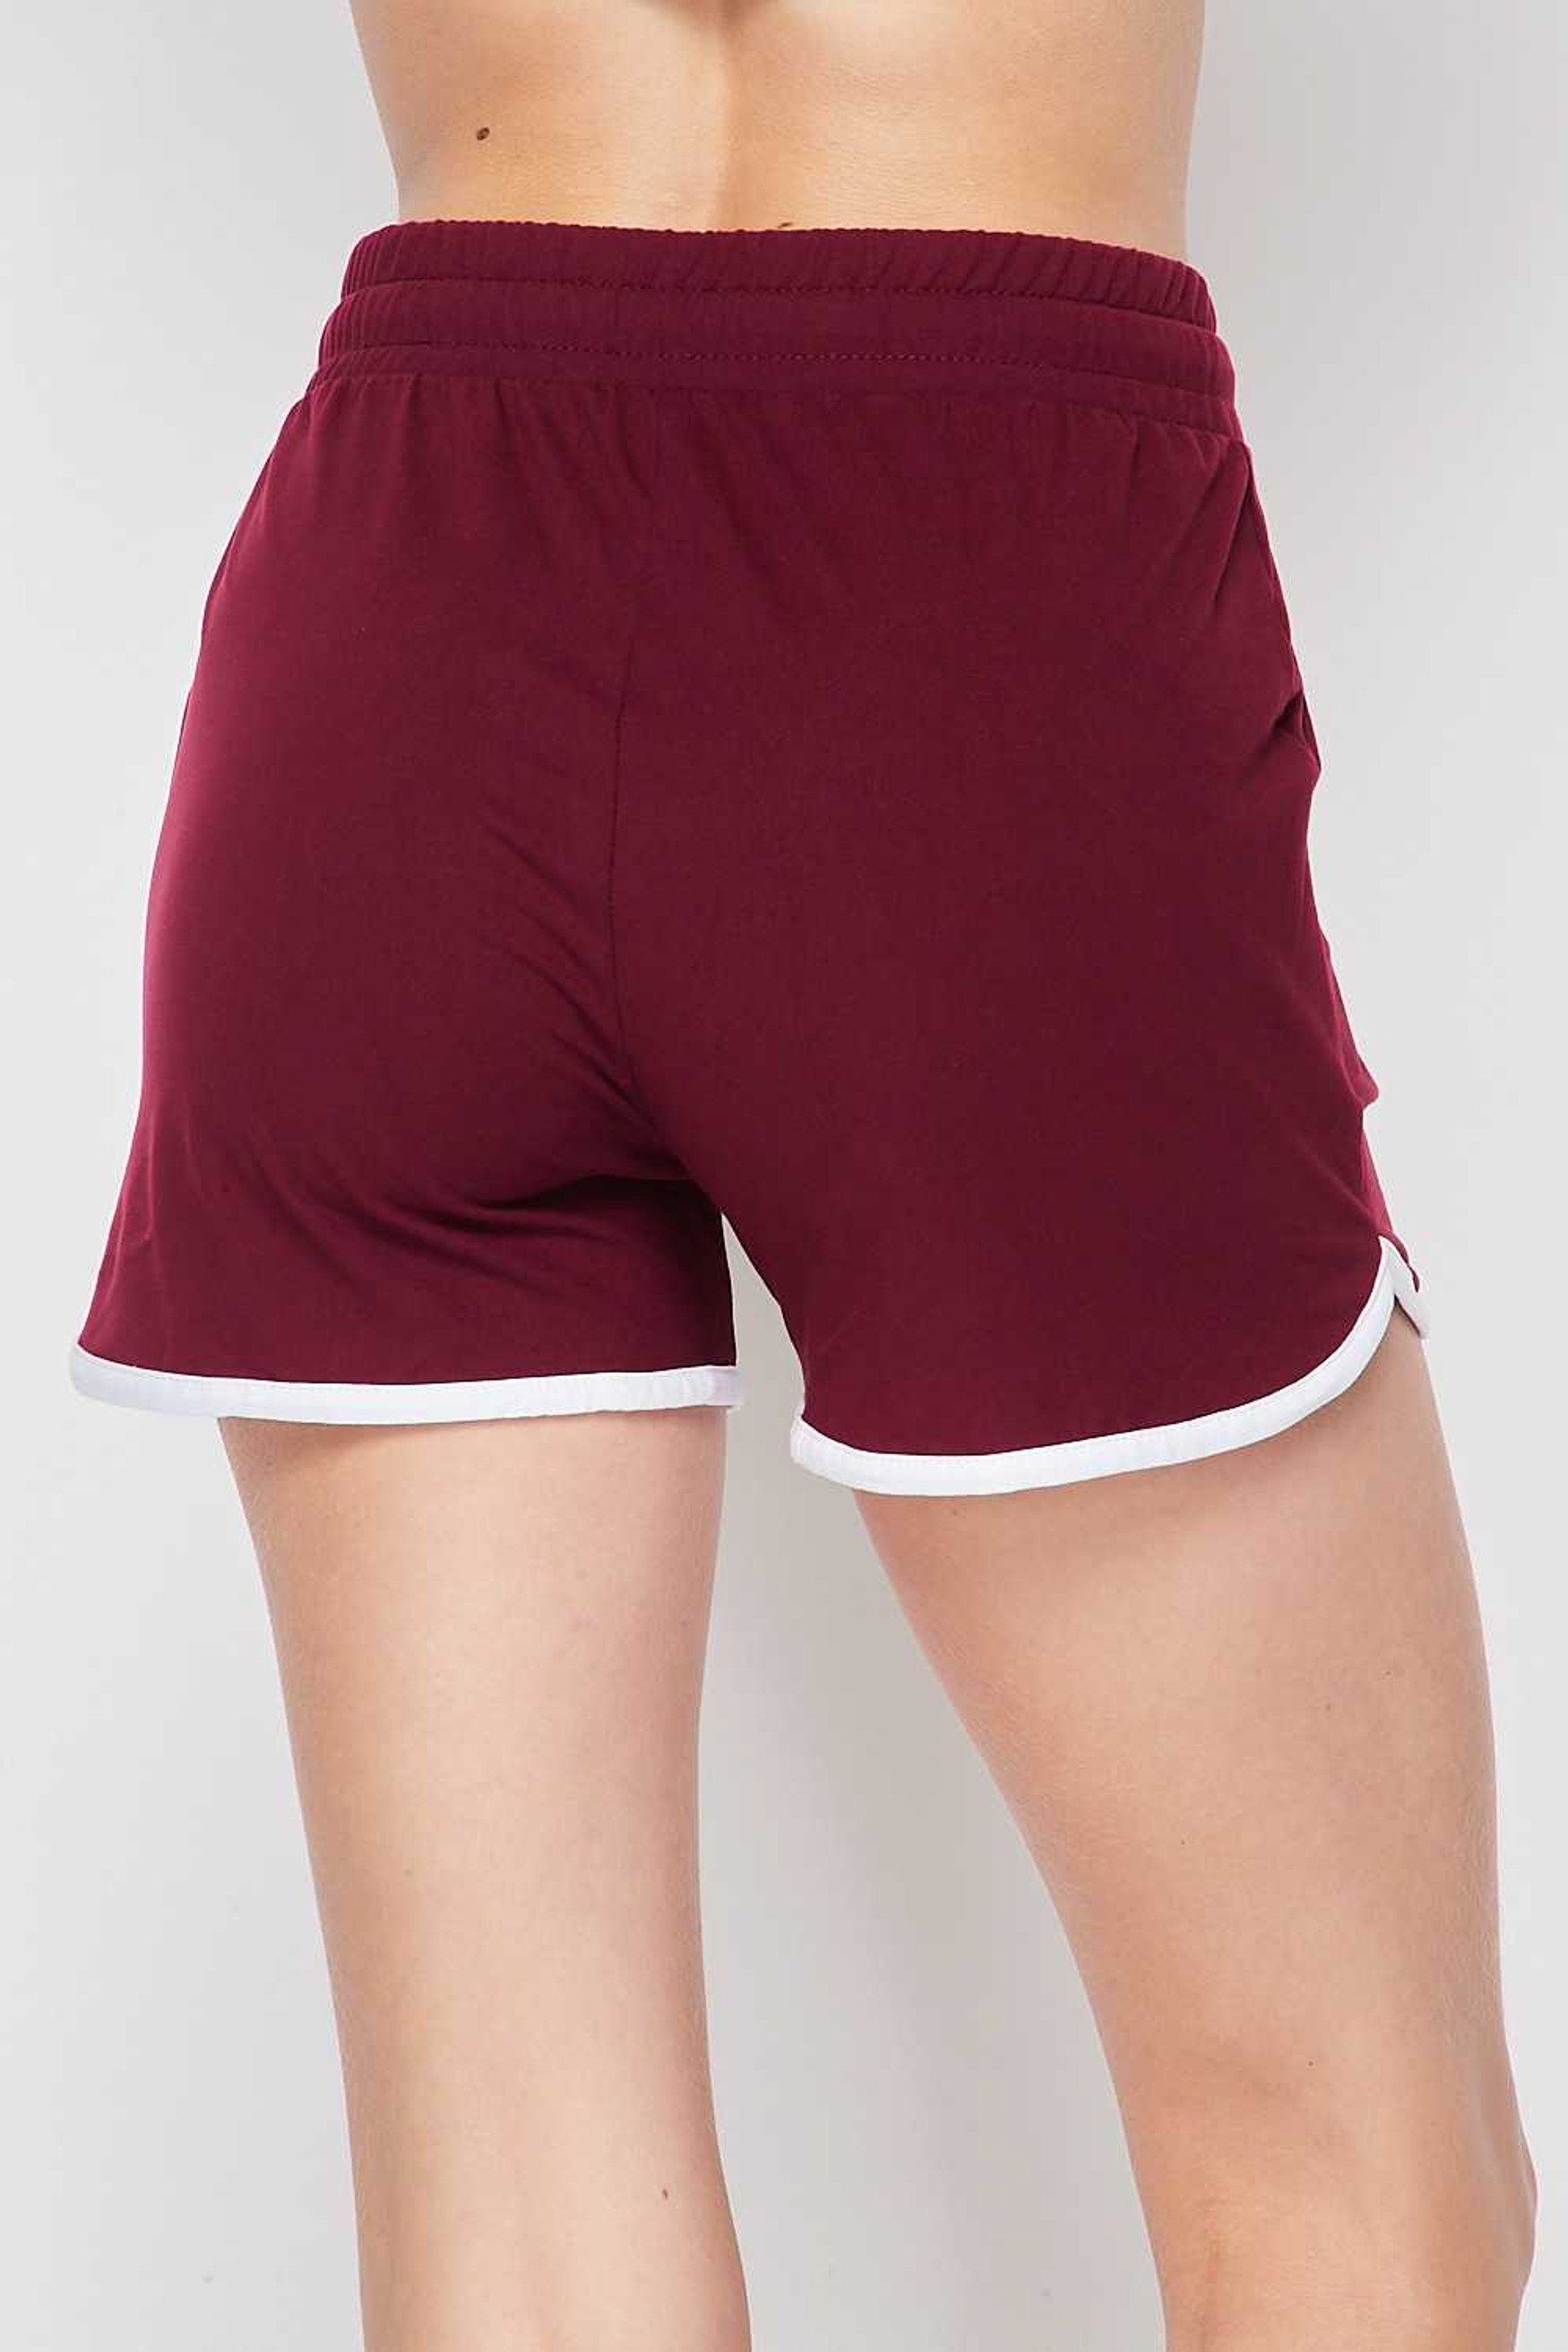 Back side of Burgundy Buttery Soft Drawstring Waist Plus Size Dolphin Shorts with Pockets